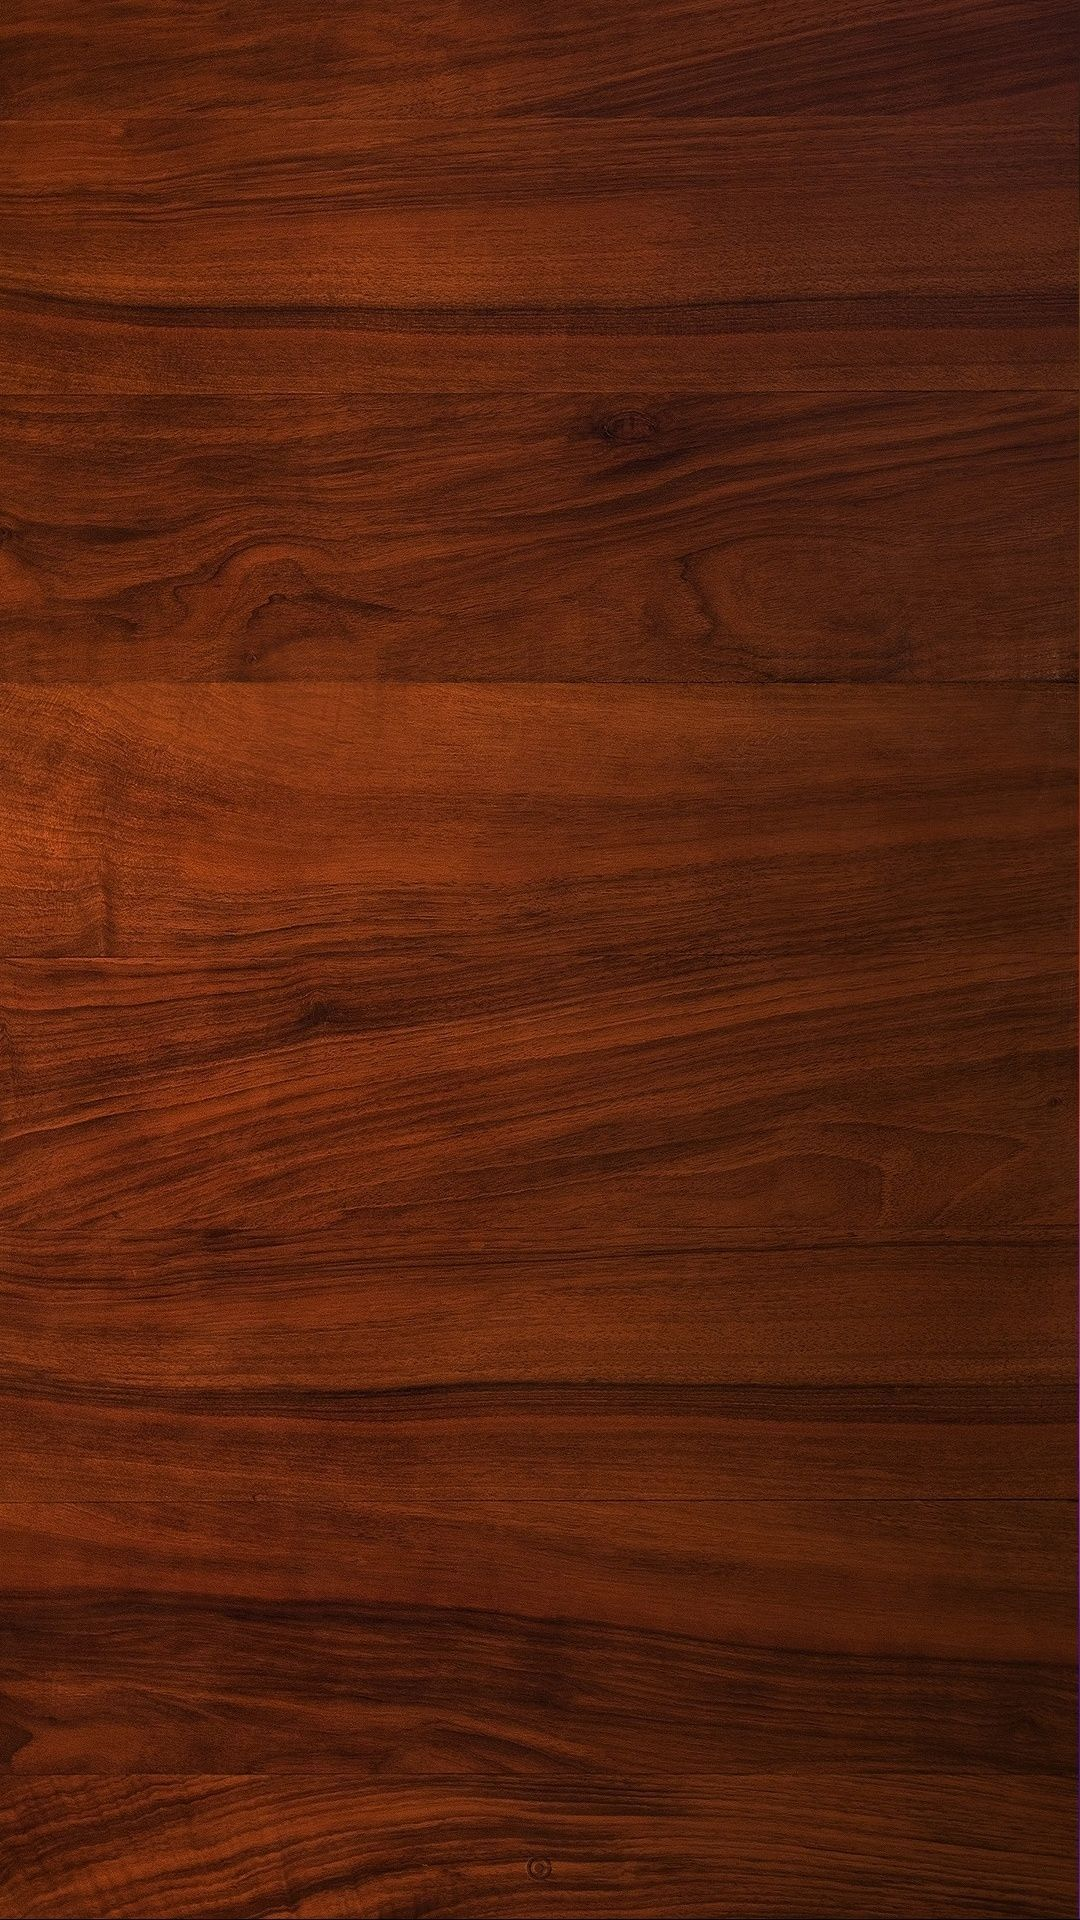 Cherry Wood Pattern Texture Fondo de pantalla de iPhone 6 Plus HD | elegido a mano